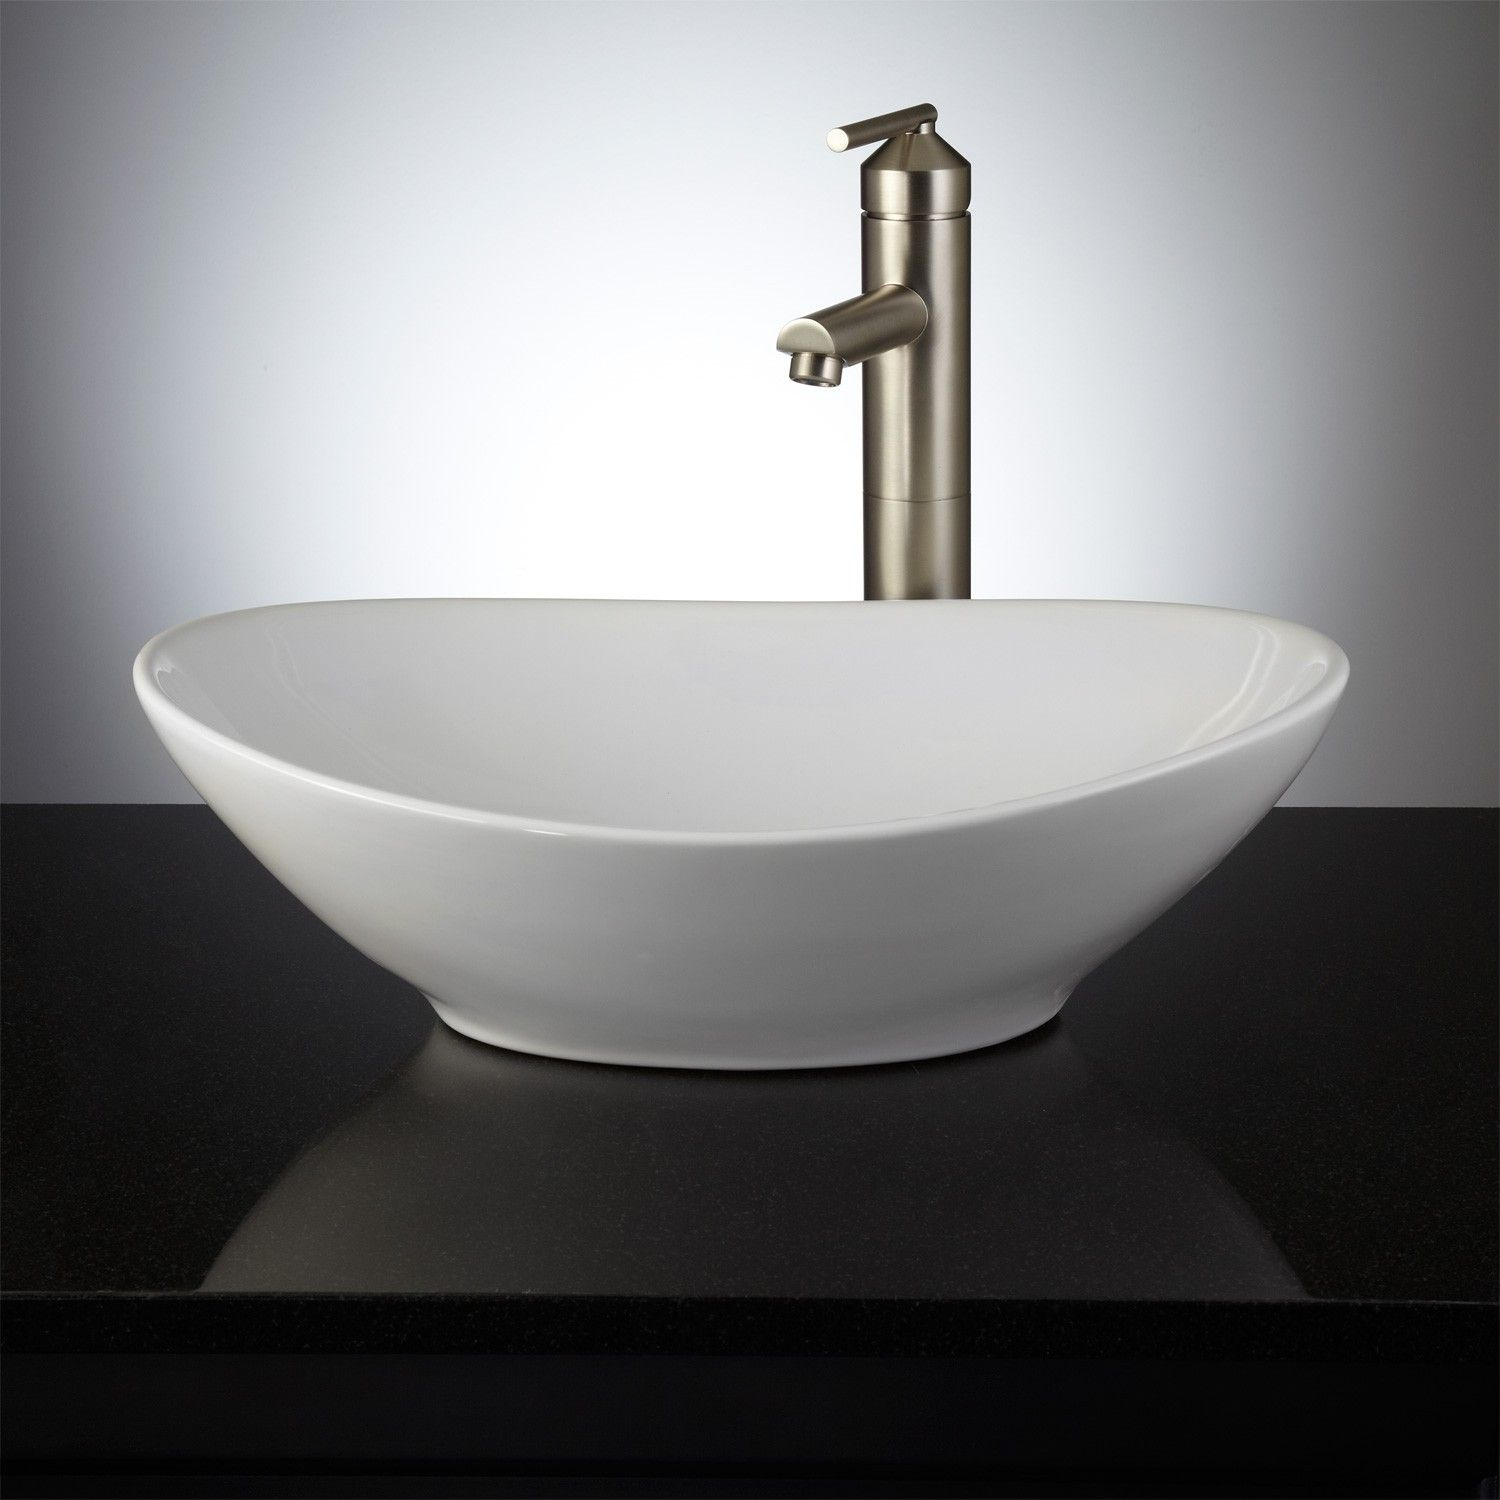 Valor Oval Vessel Sink No Overflow Holes White Vessel Sinks Bathroom Sinks Bathroom 画像あり ハウス